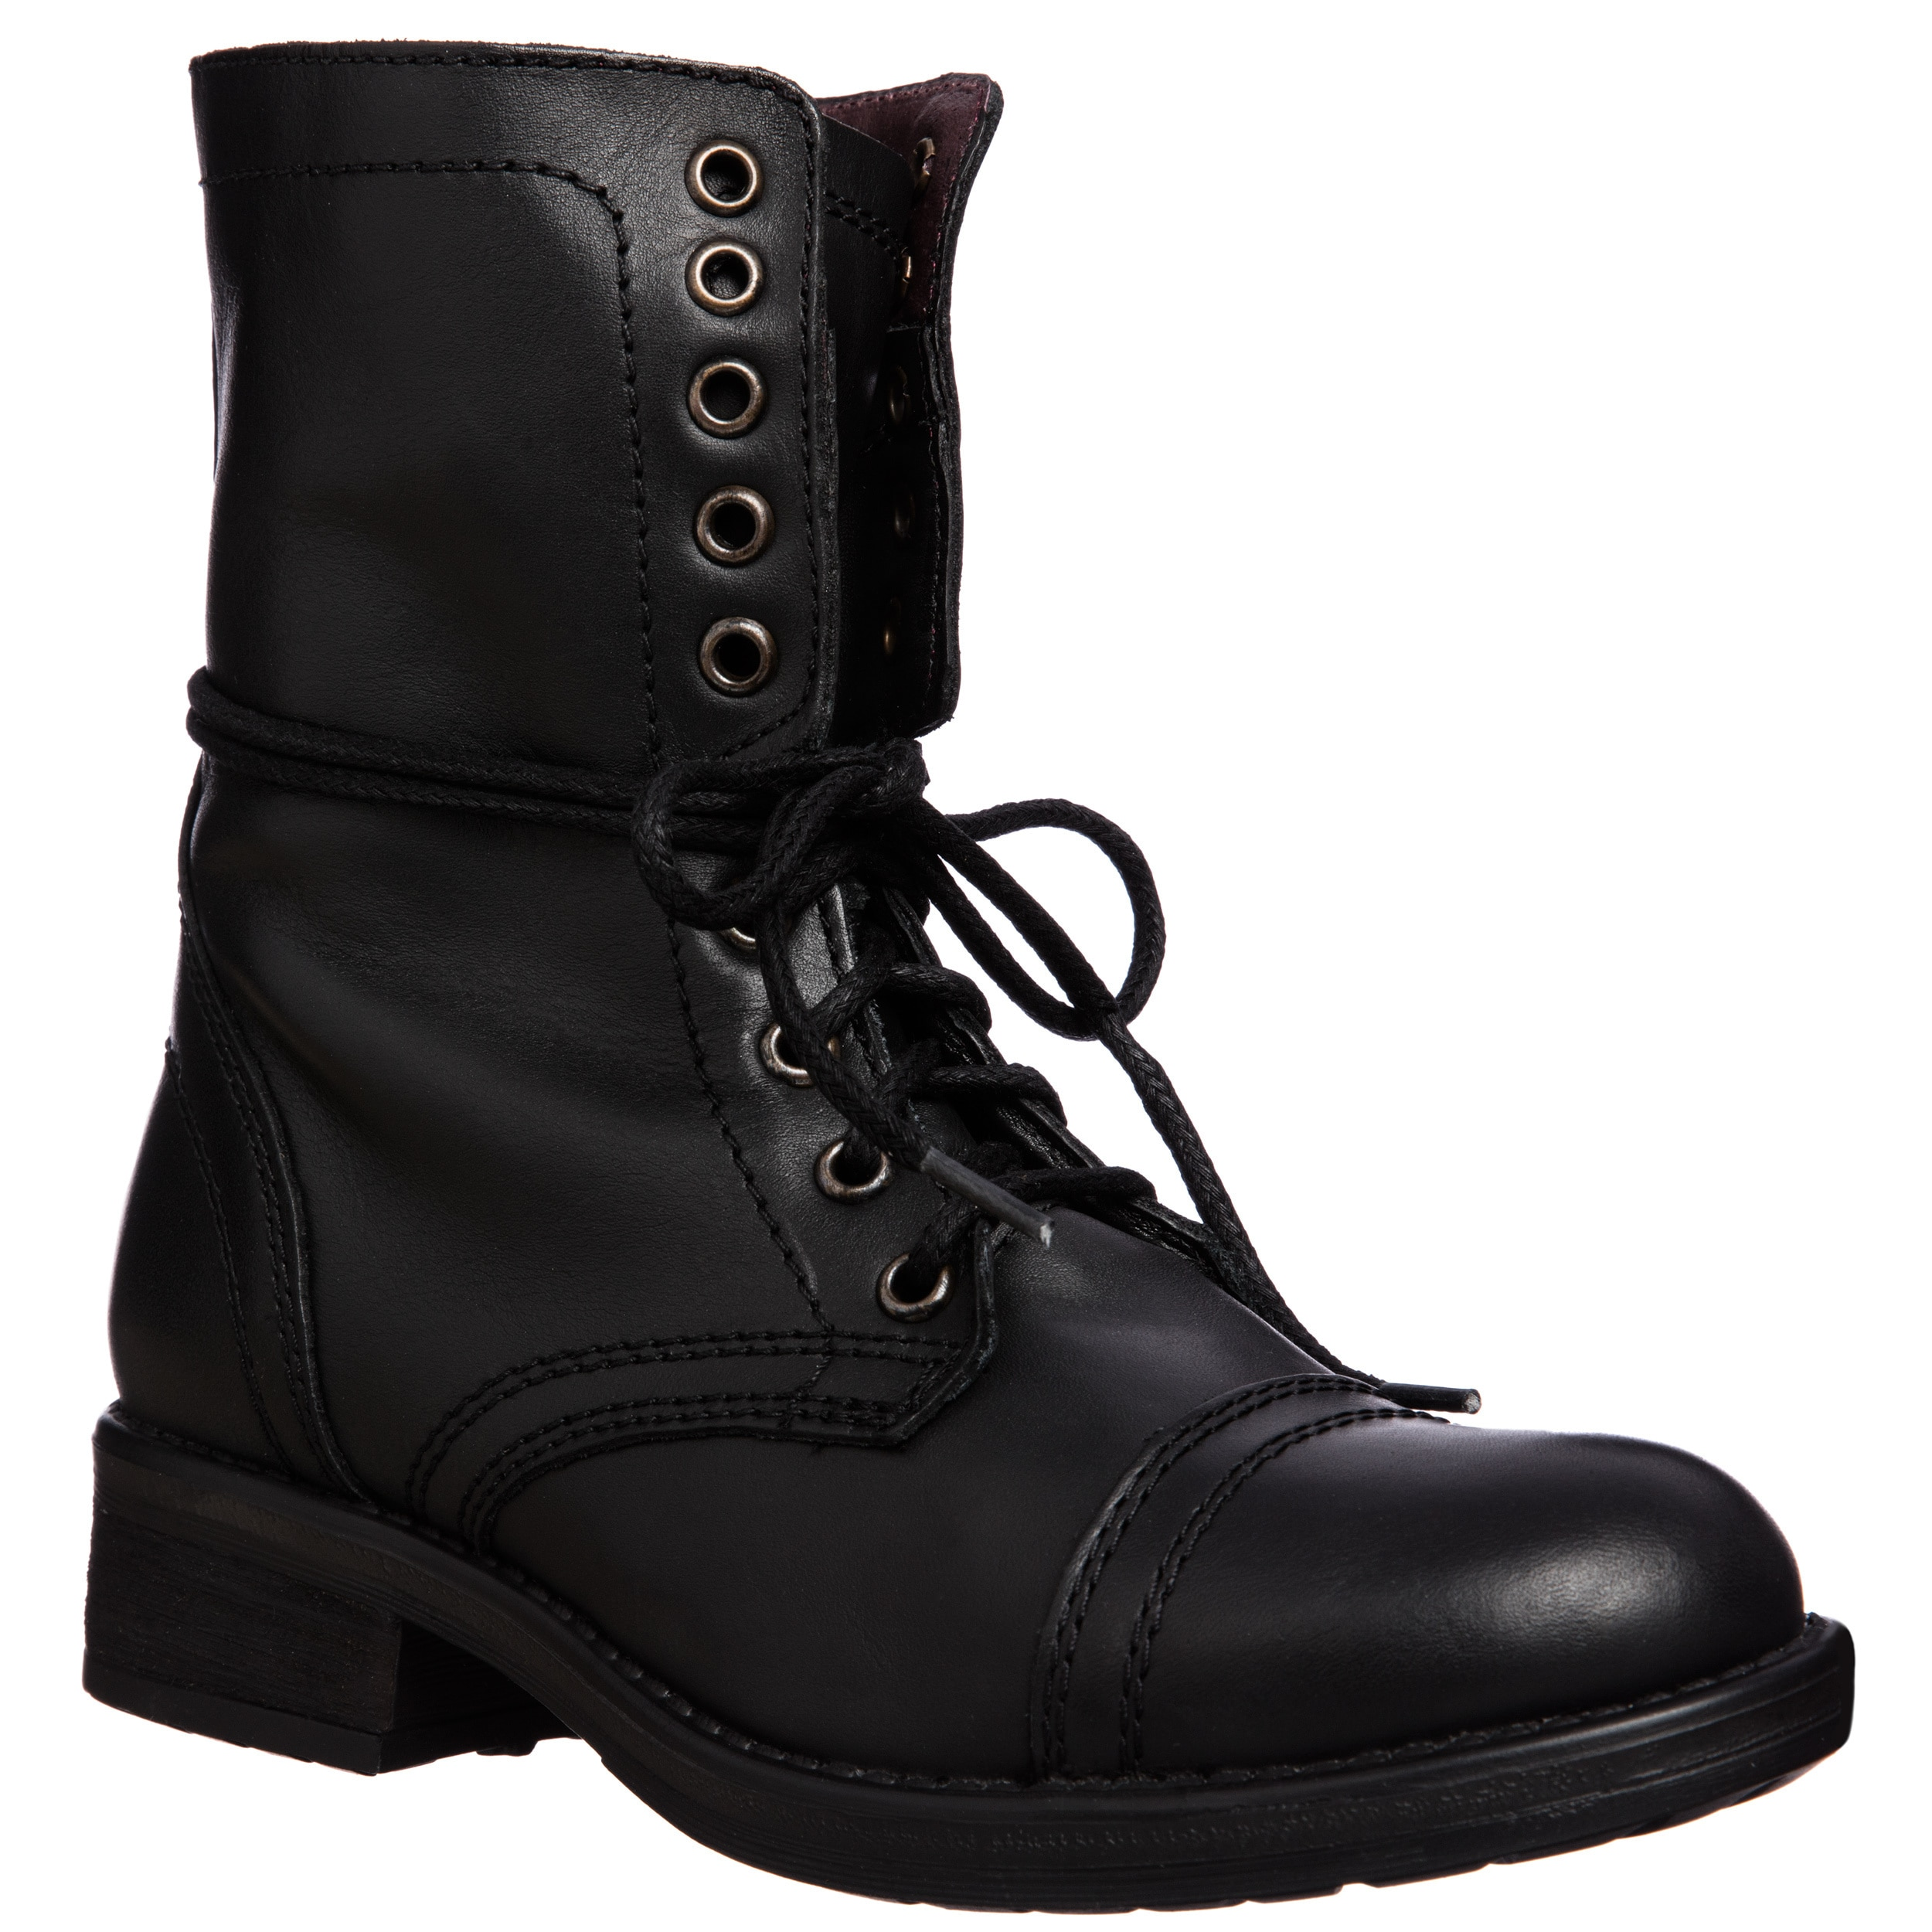 Tropa2 Steve Madden Women's Lace up Combat Boot | eBay